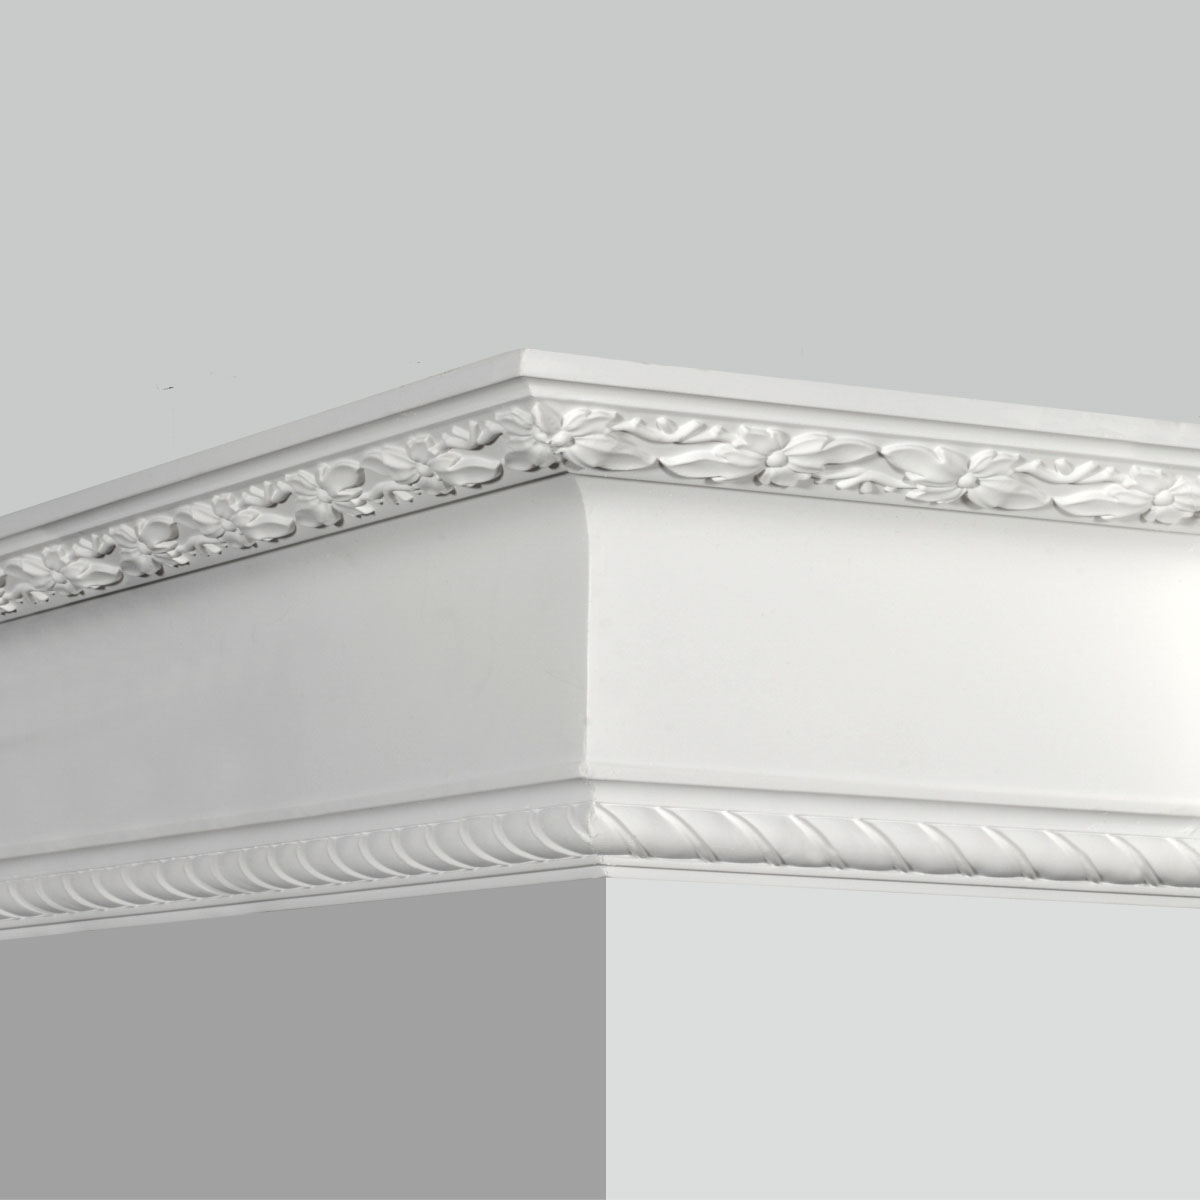 Polyurethane decorative rope crown molding for sale